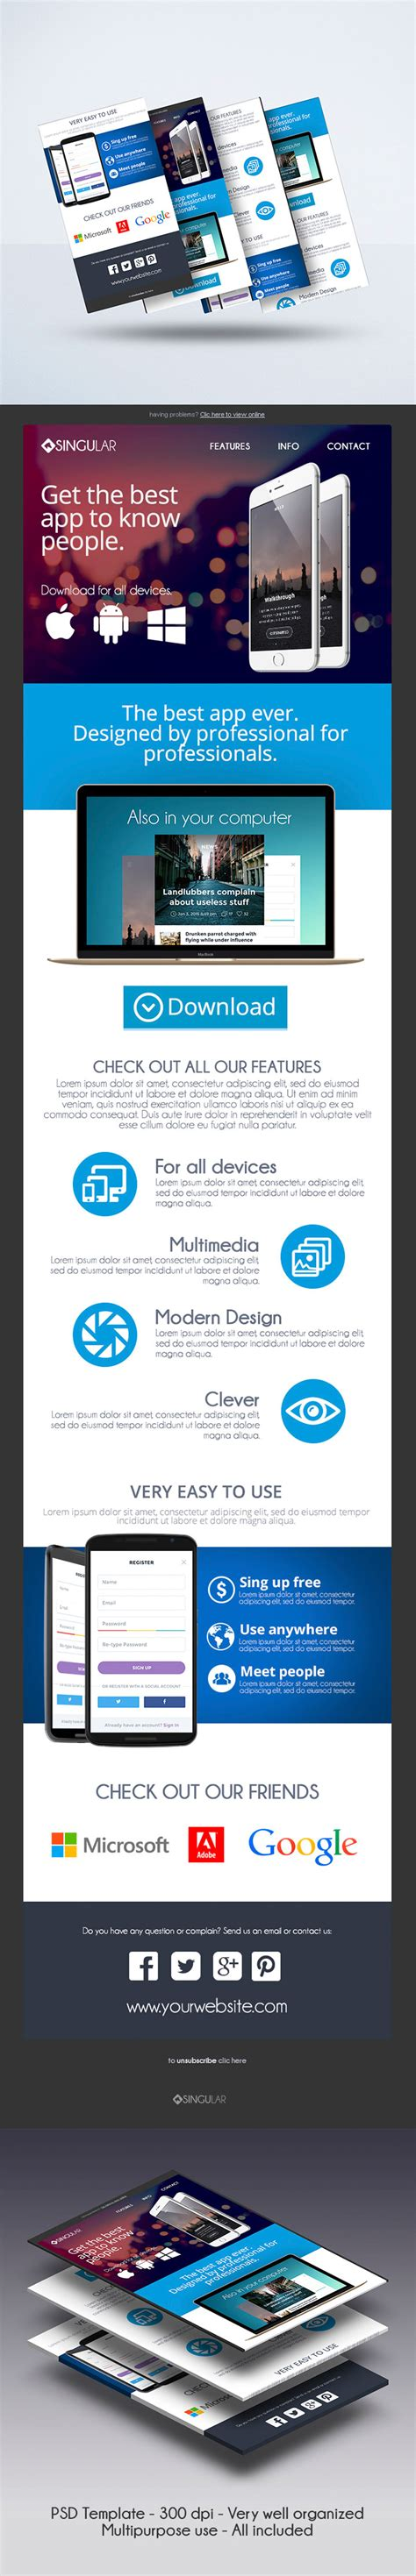 Multipurpose App Mobile Newsletter Template Graphicfy Mobile Newsletter Template